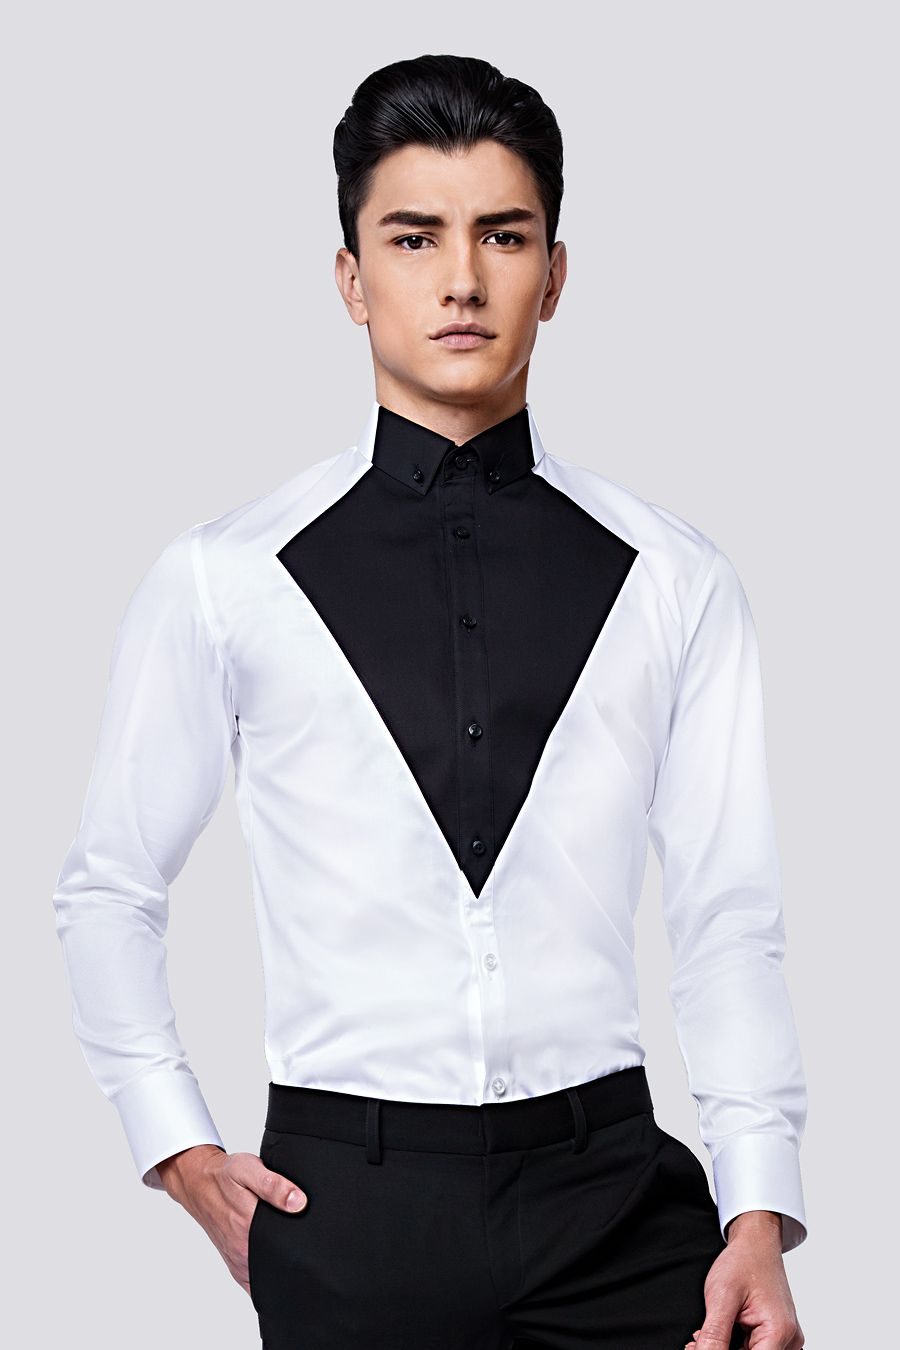 84621c2ff36 Designer Shirt by Adamist. Find this Pin and more on Men s fashion ...